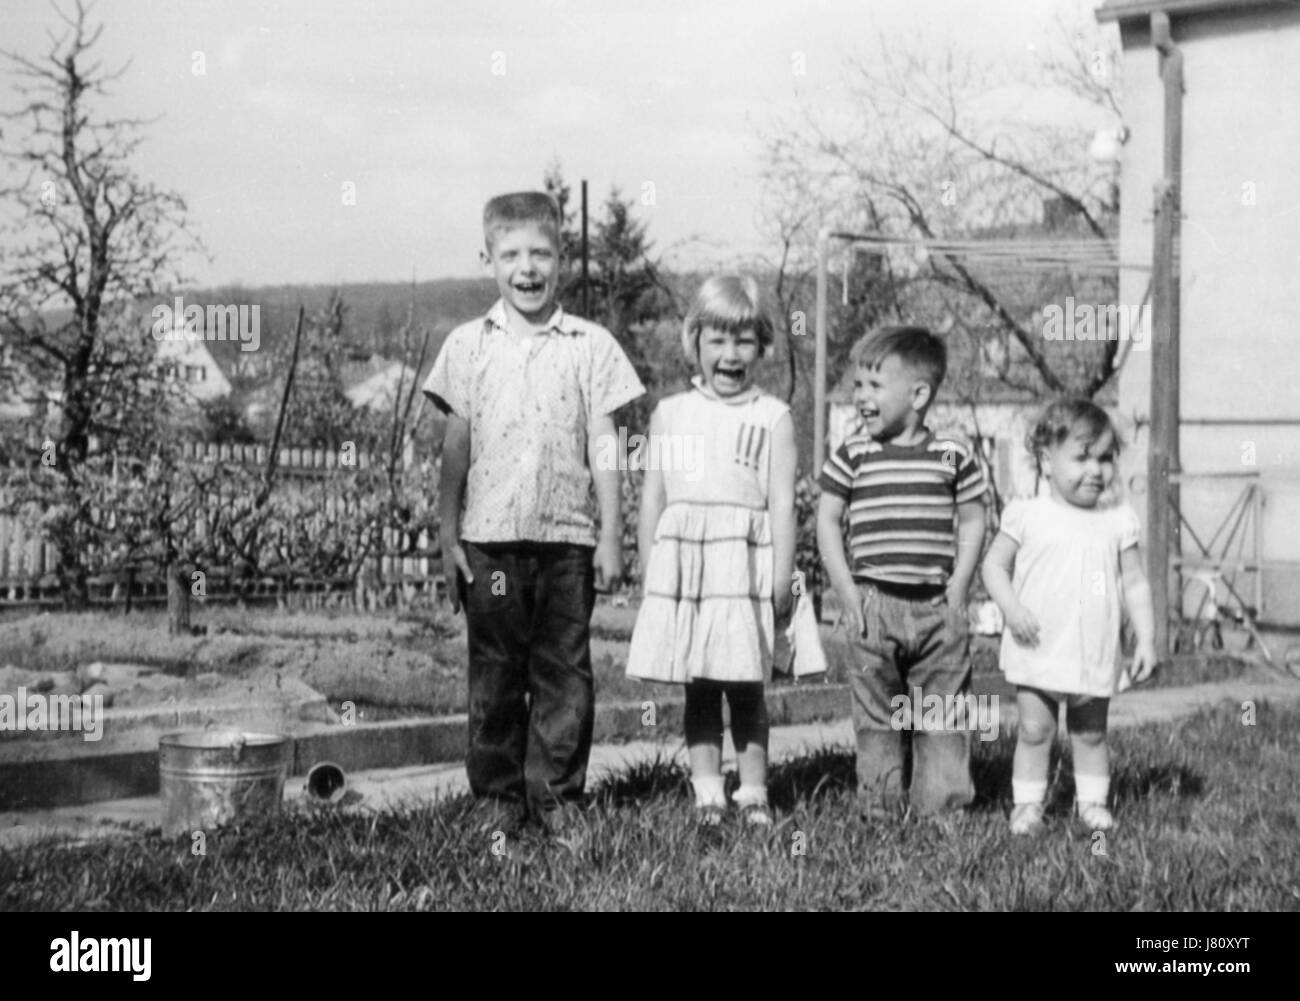 1950's Stair-step  Four Children Posing in Backyard, USA - Stock Image